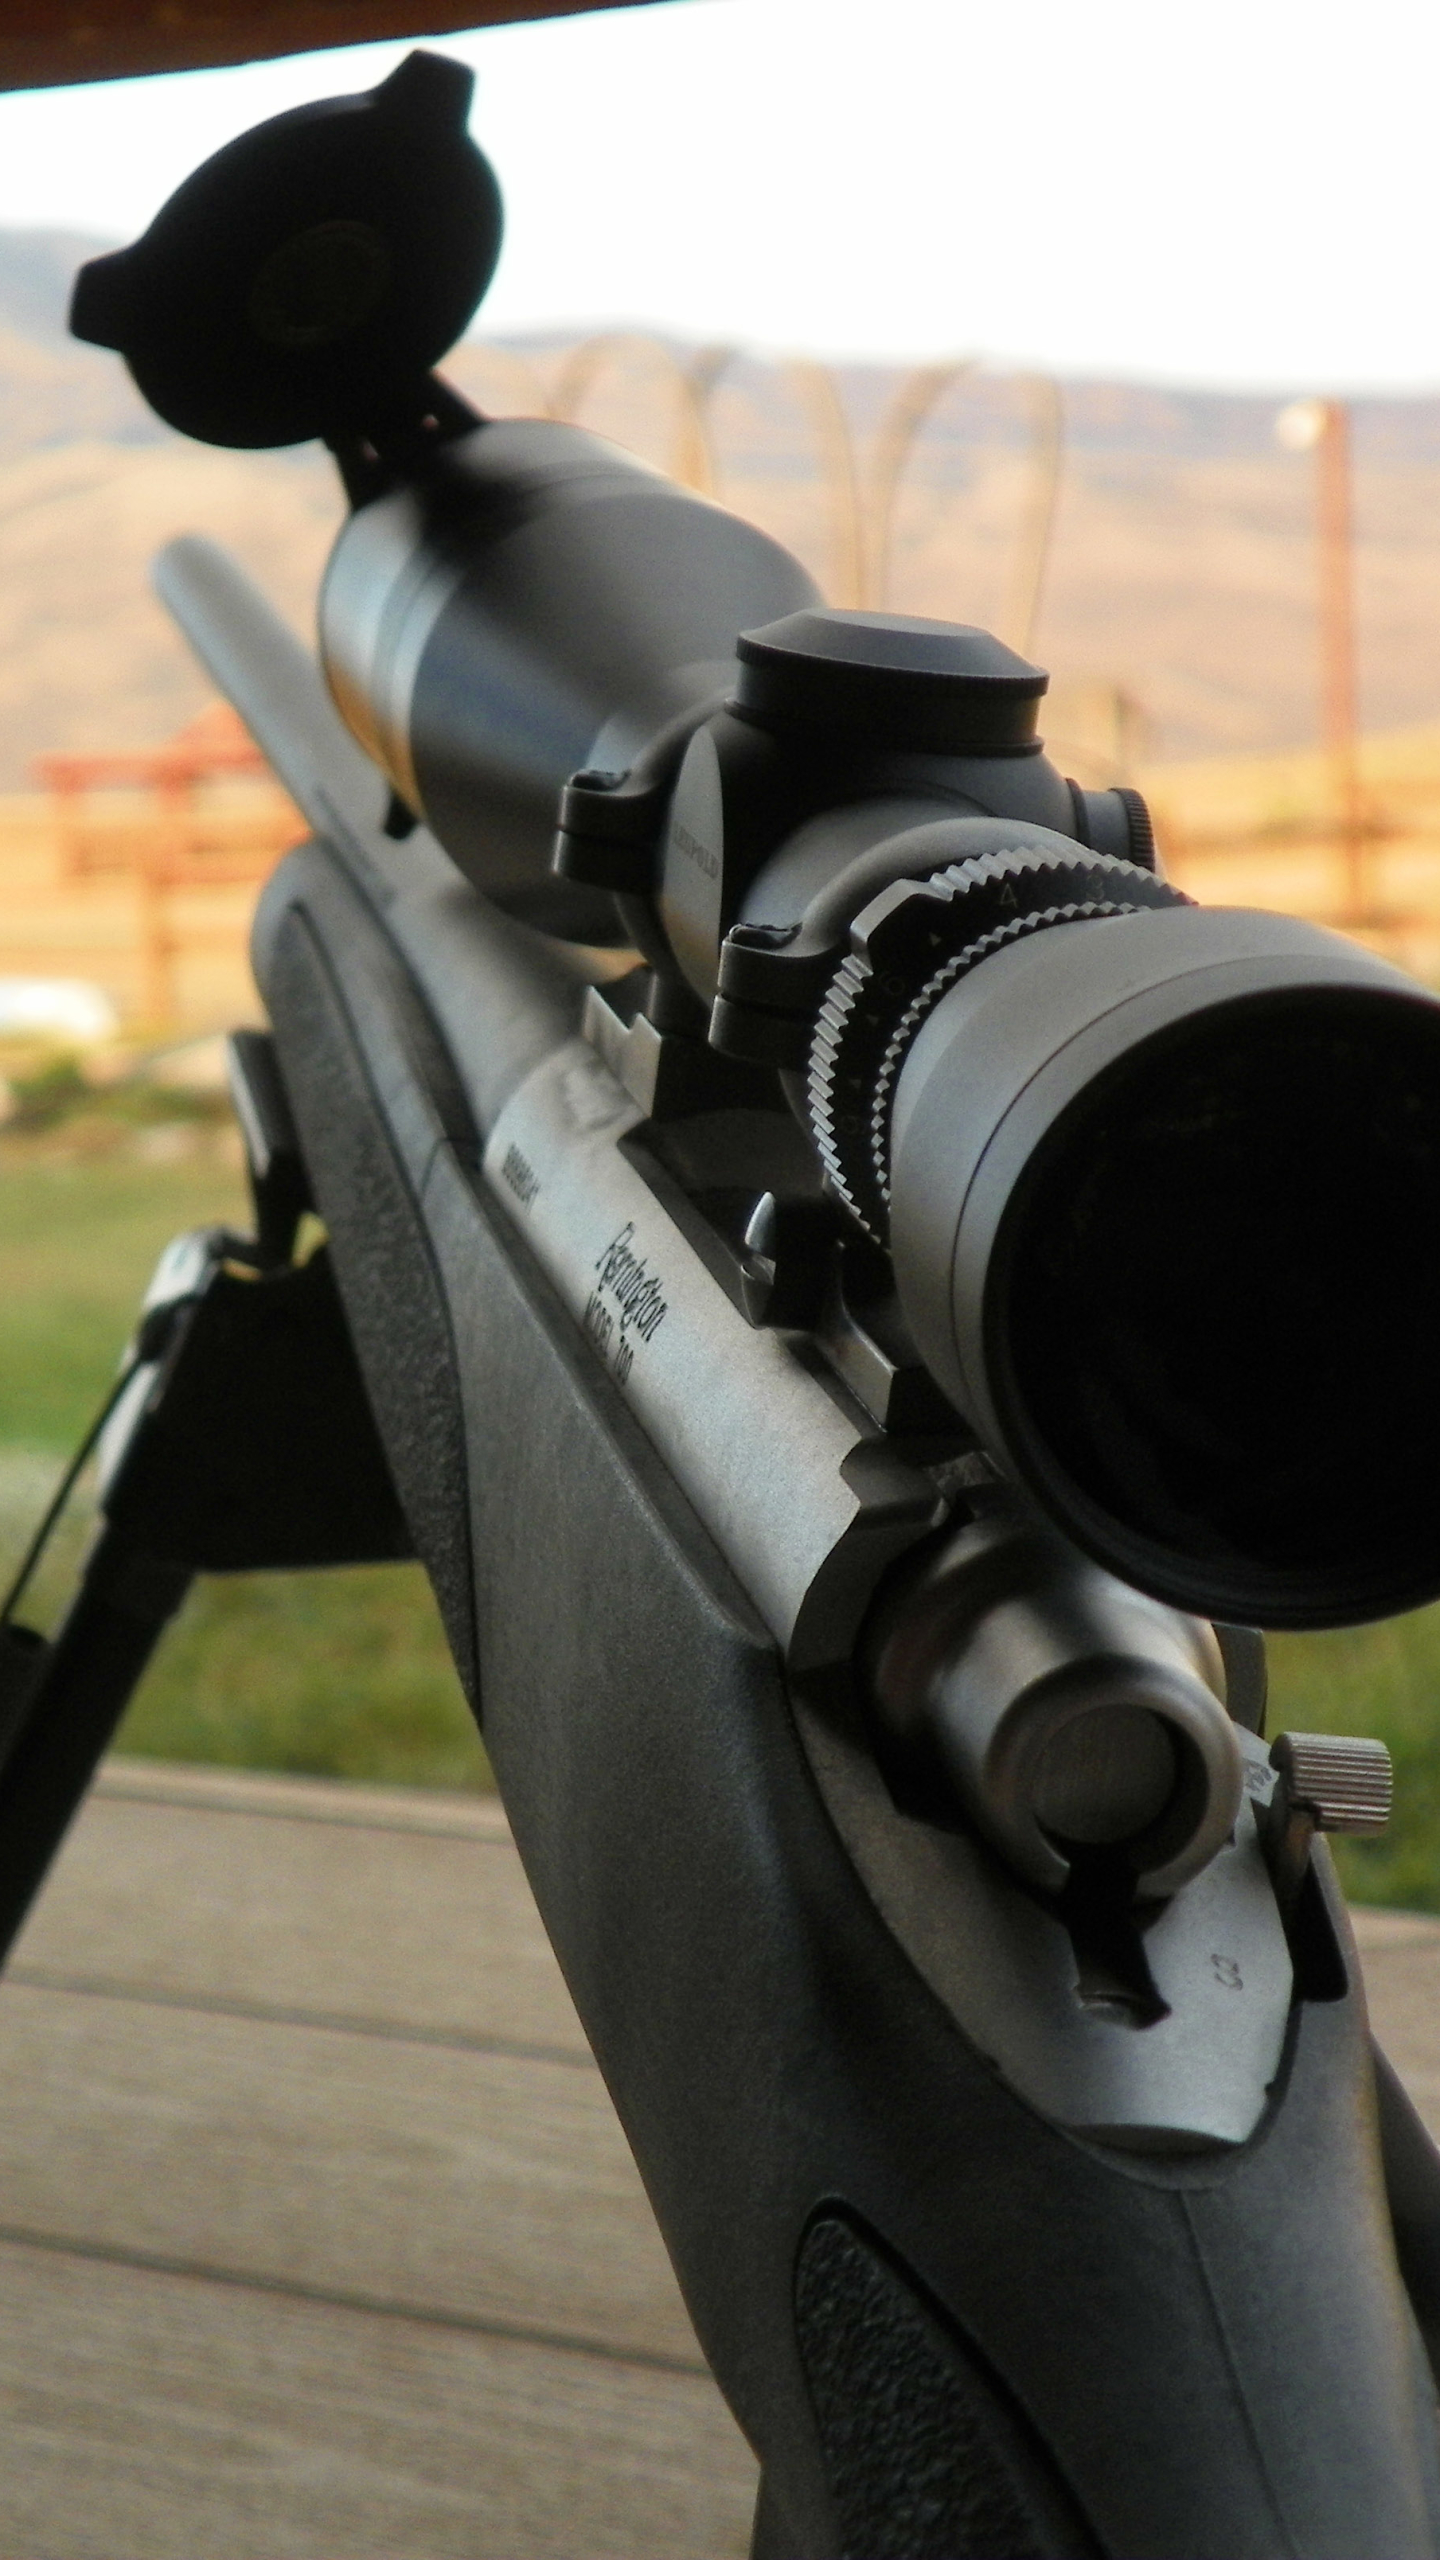 Weapons Sniper Rifle 720x1280 Mobile Wallpaper